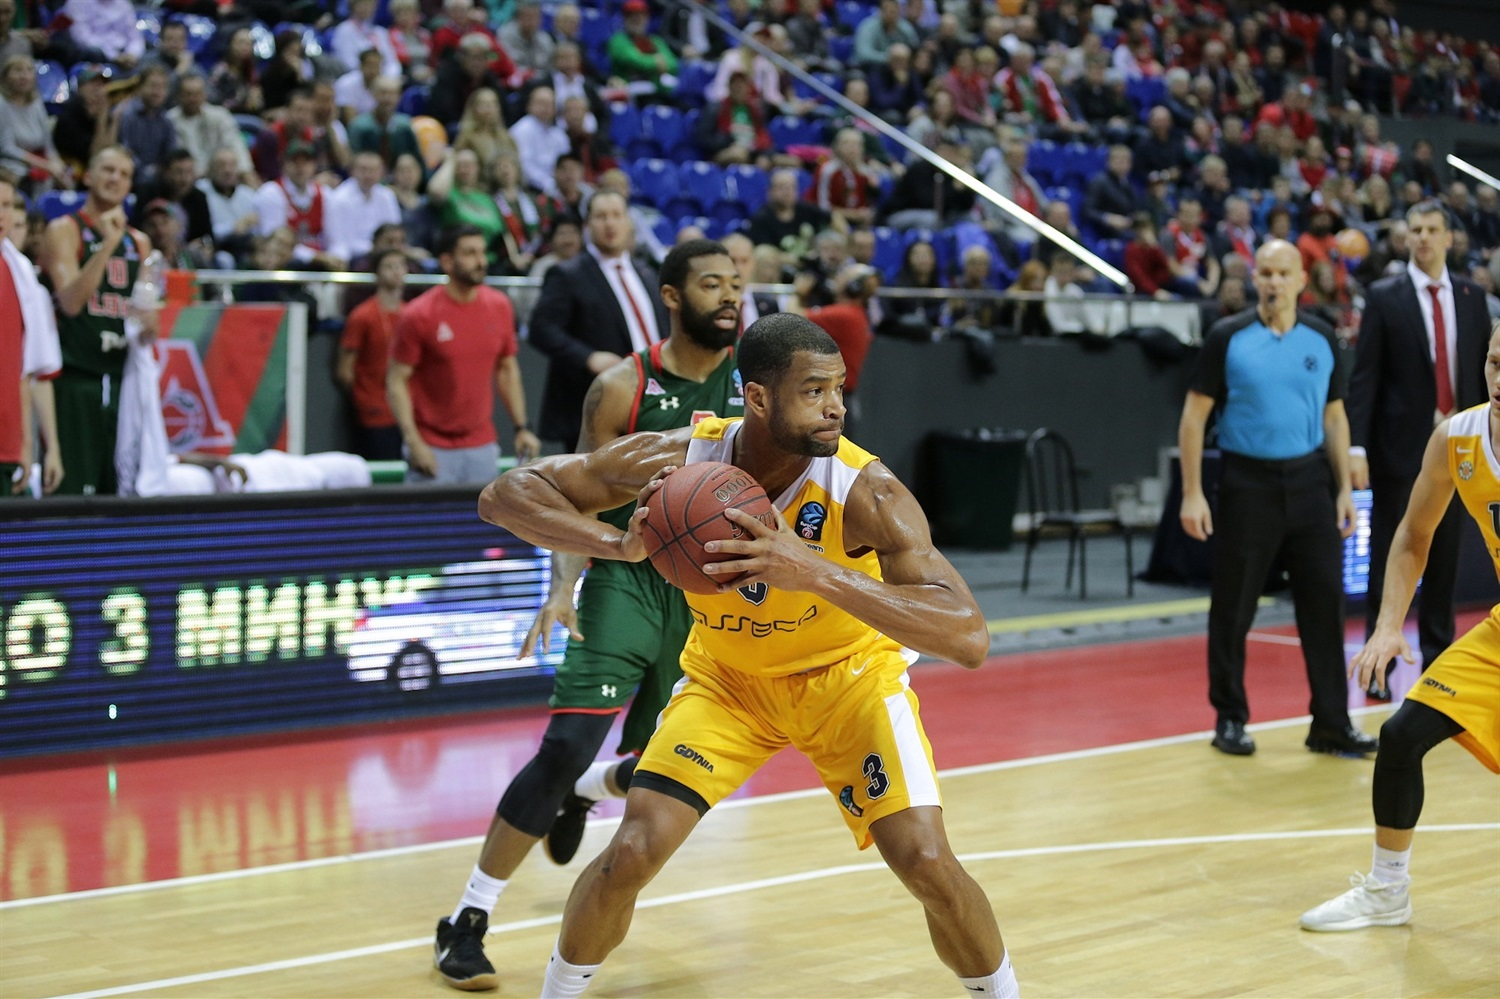 Josh Bostic - Arka Gdynia (photo Lokomotiv) - EC18